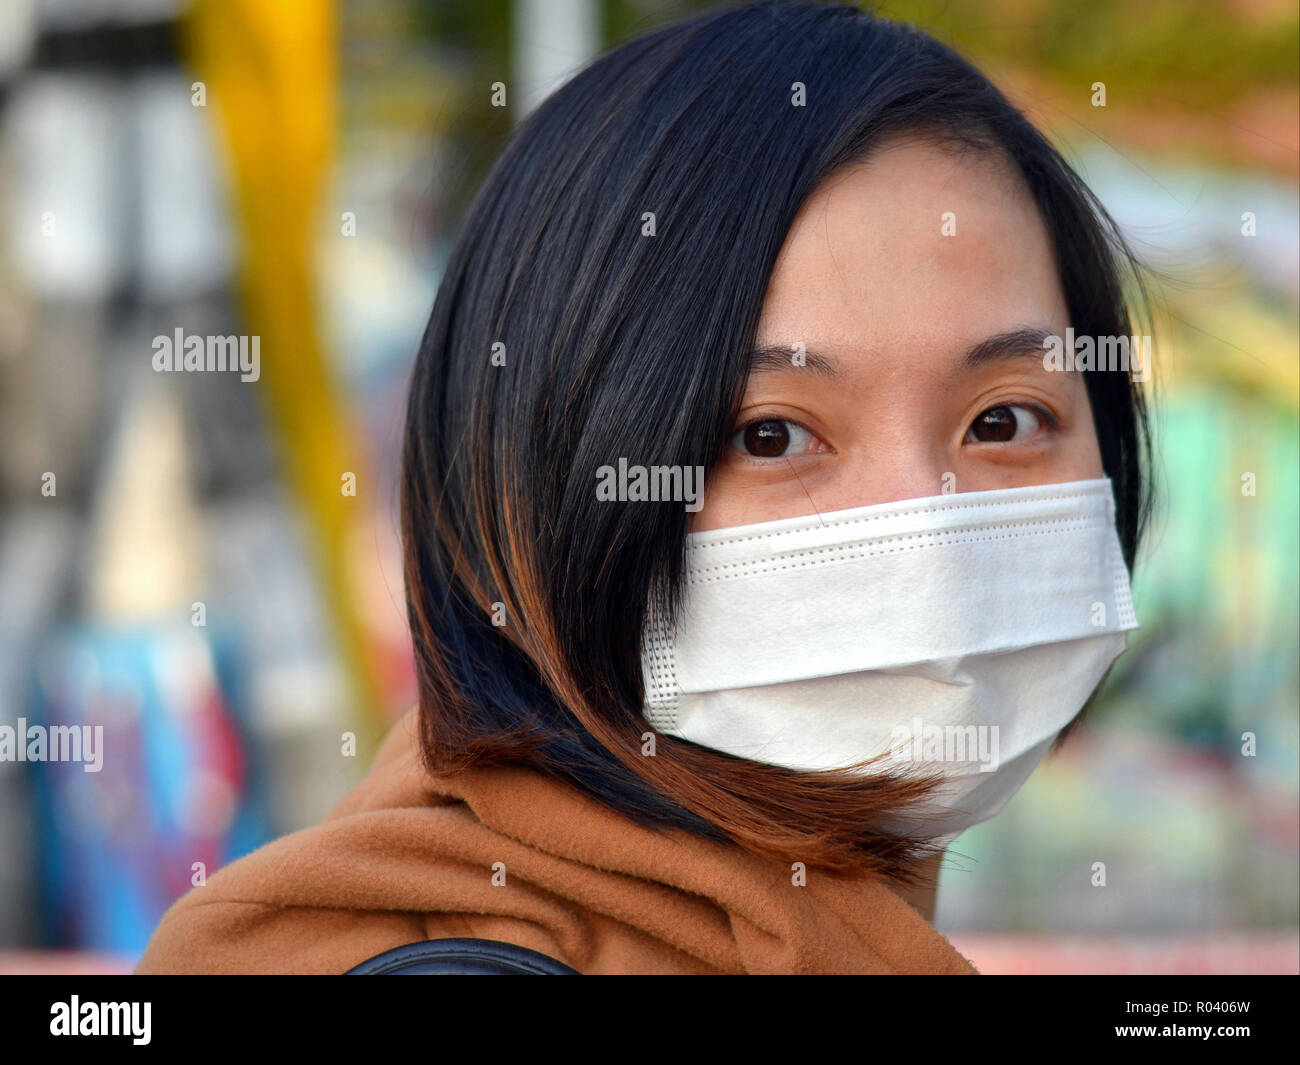 Young Taiwanese woman with big eyes wears in public a white disposable surgical earlobe face mask. - Stock Image